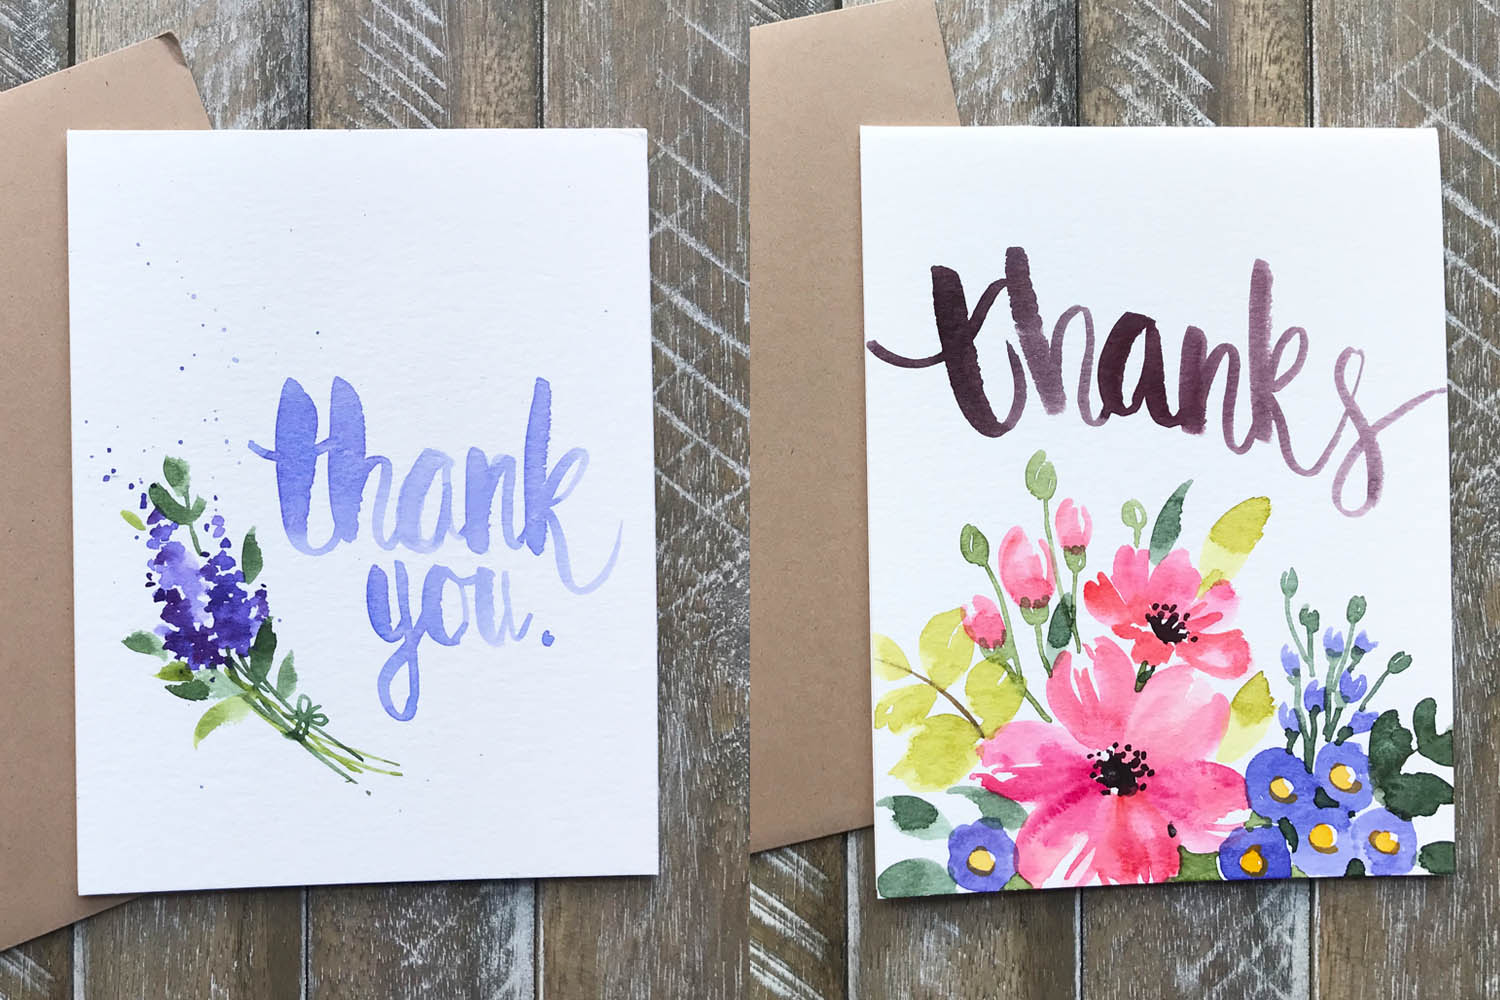 Hand painted thank you greeting cards hand painted thank you greeting cards in greeting m4hsunfo